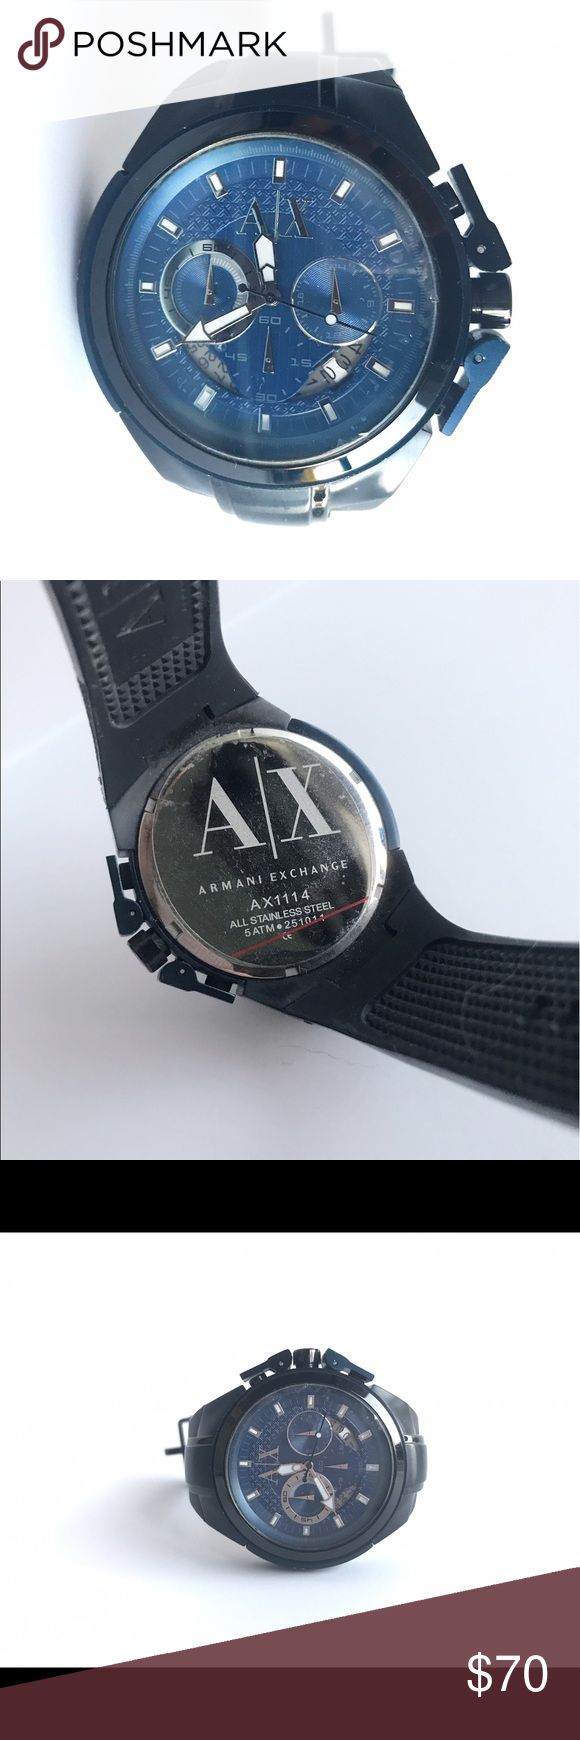 Armani exchange Mens watch This is a men's watch that has only been used a couple of times and still has backside sticker attached. It has rubber straps that are a black and navy blue. Let me know if you need more pictures or have any questions! 💕 A/X Armani Exchange Accessories Watches